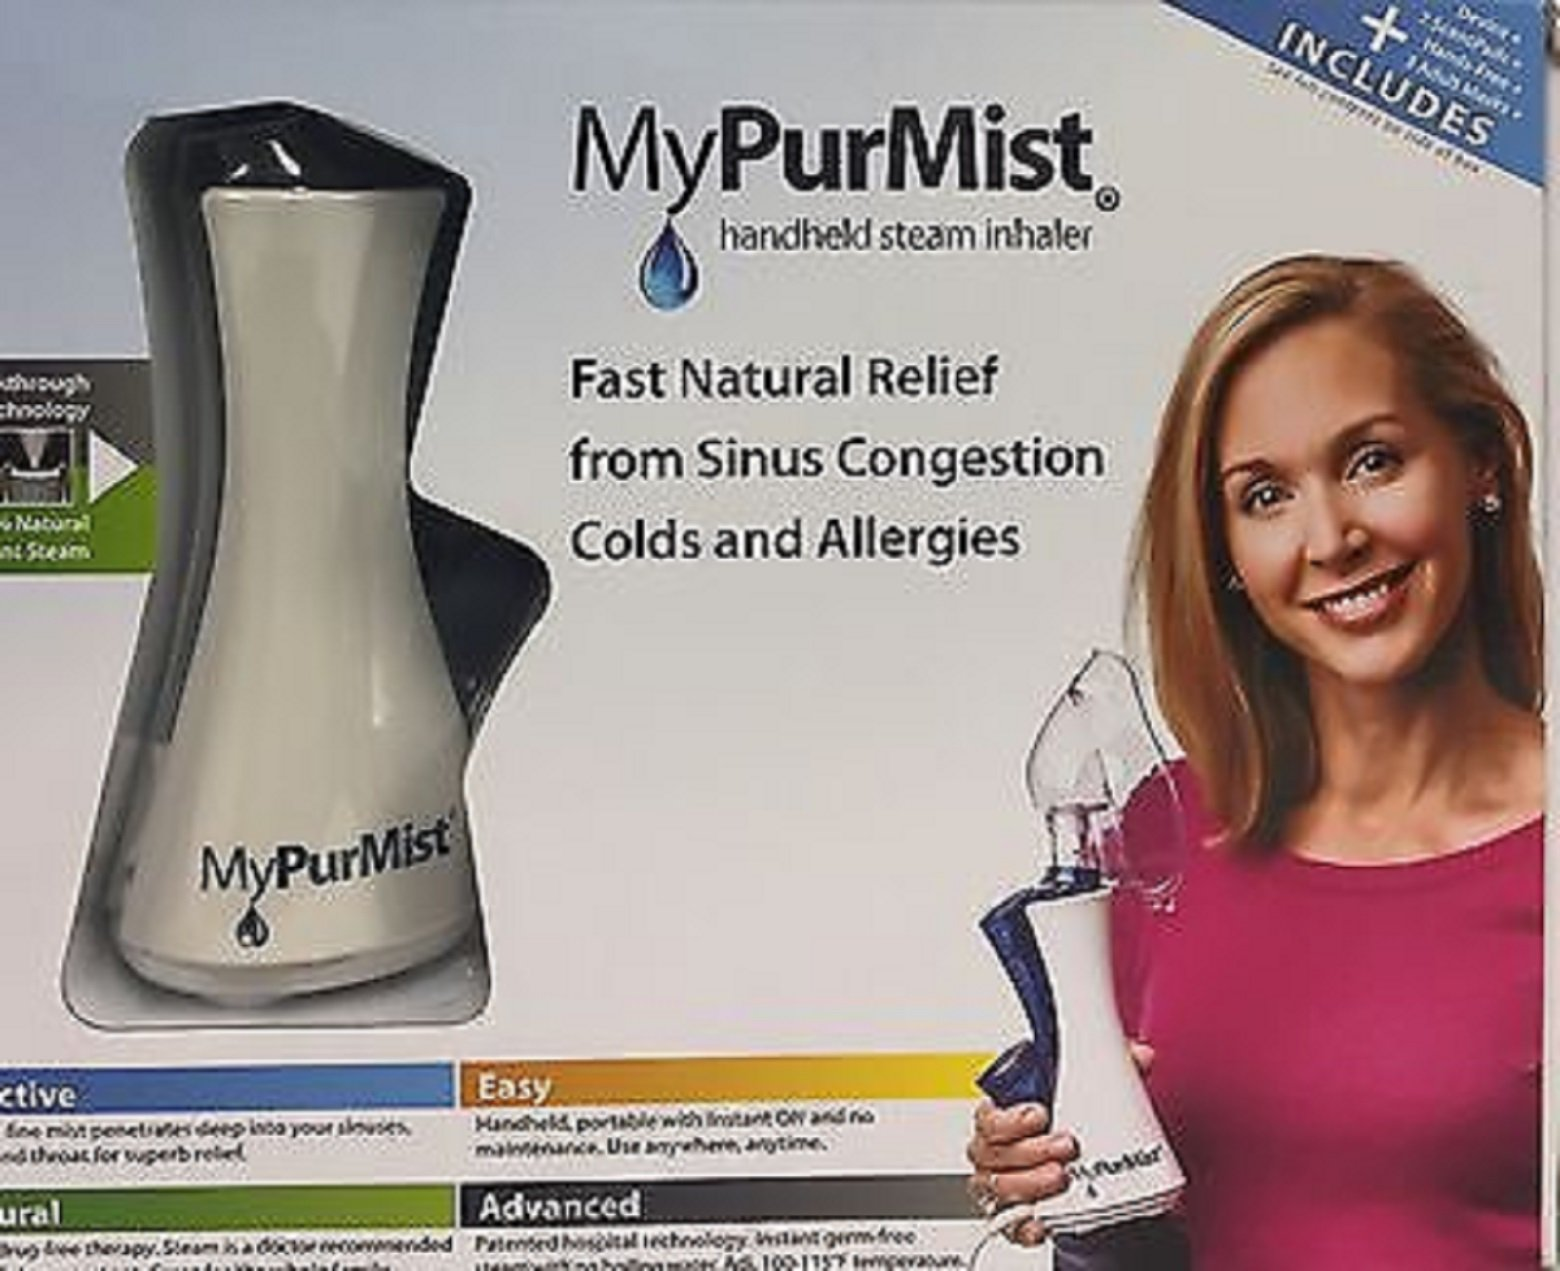 MyPurMist Handheld Steam Inhaler by MyPurMist